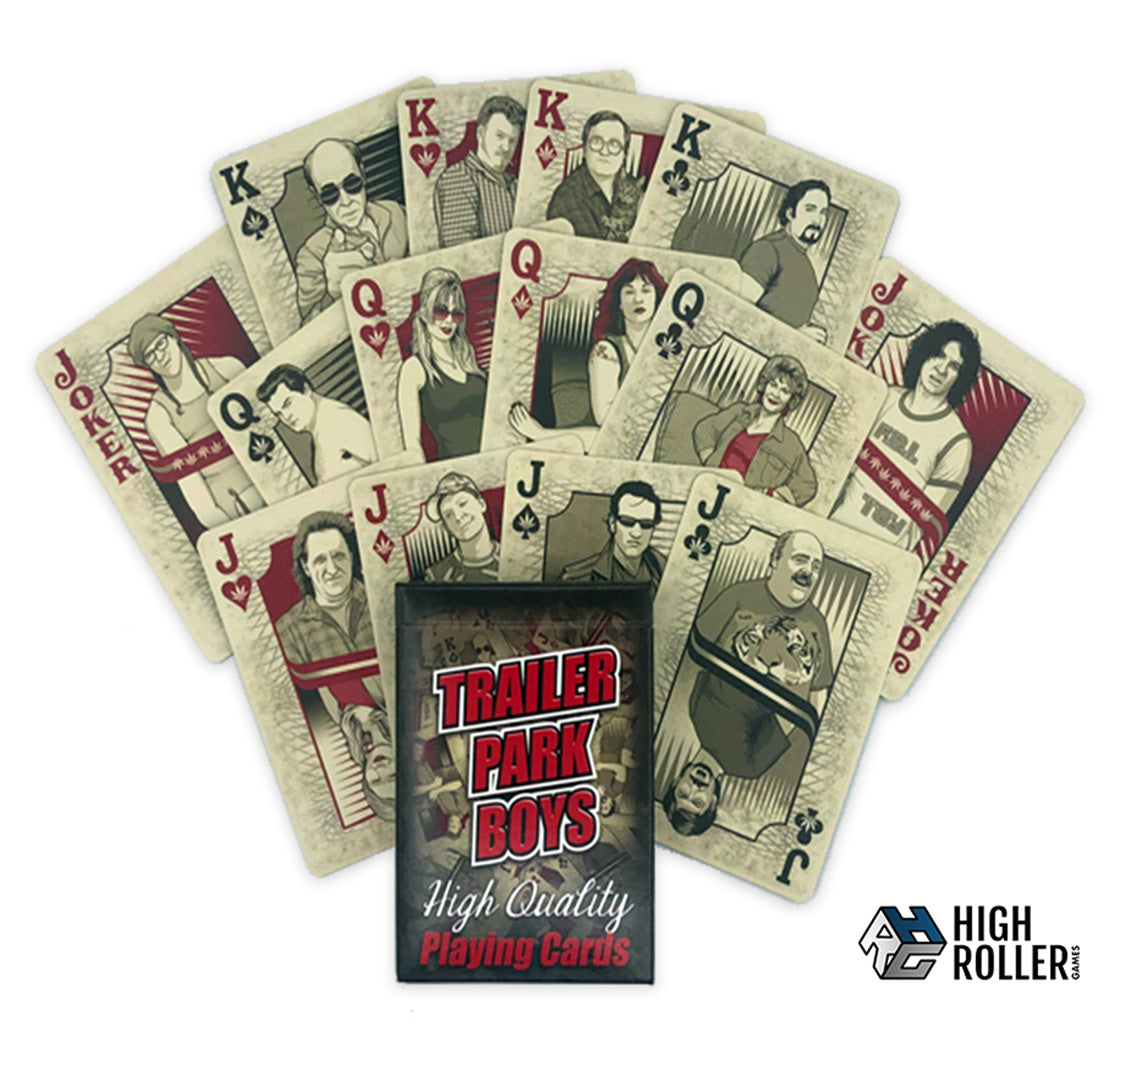 Trailer Park Boys Poker Cards